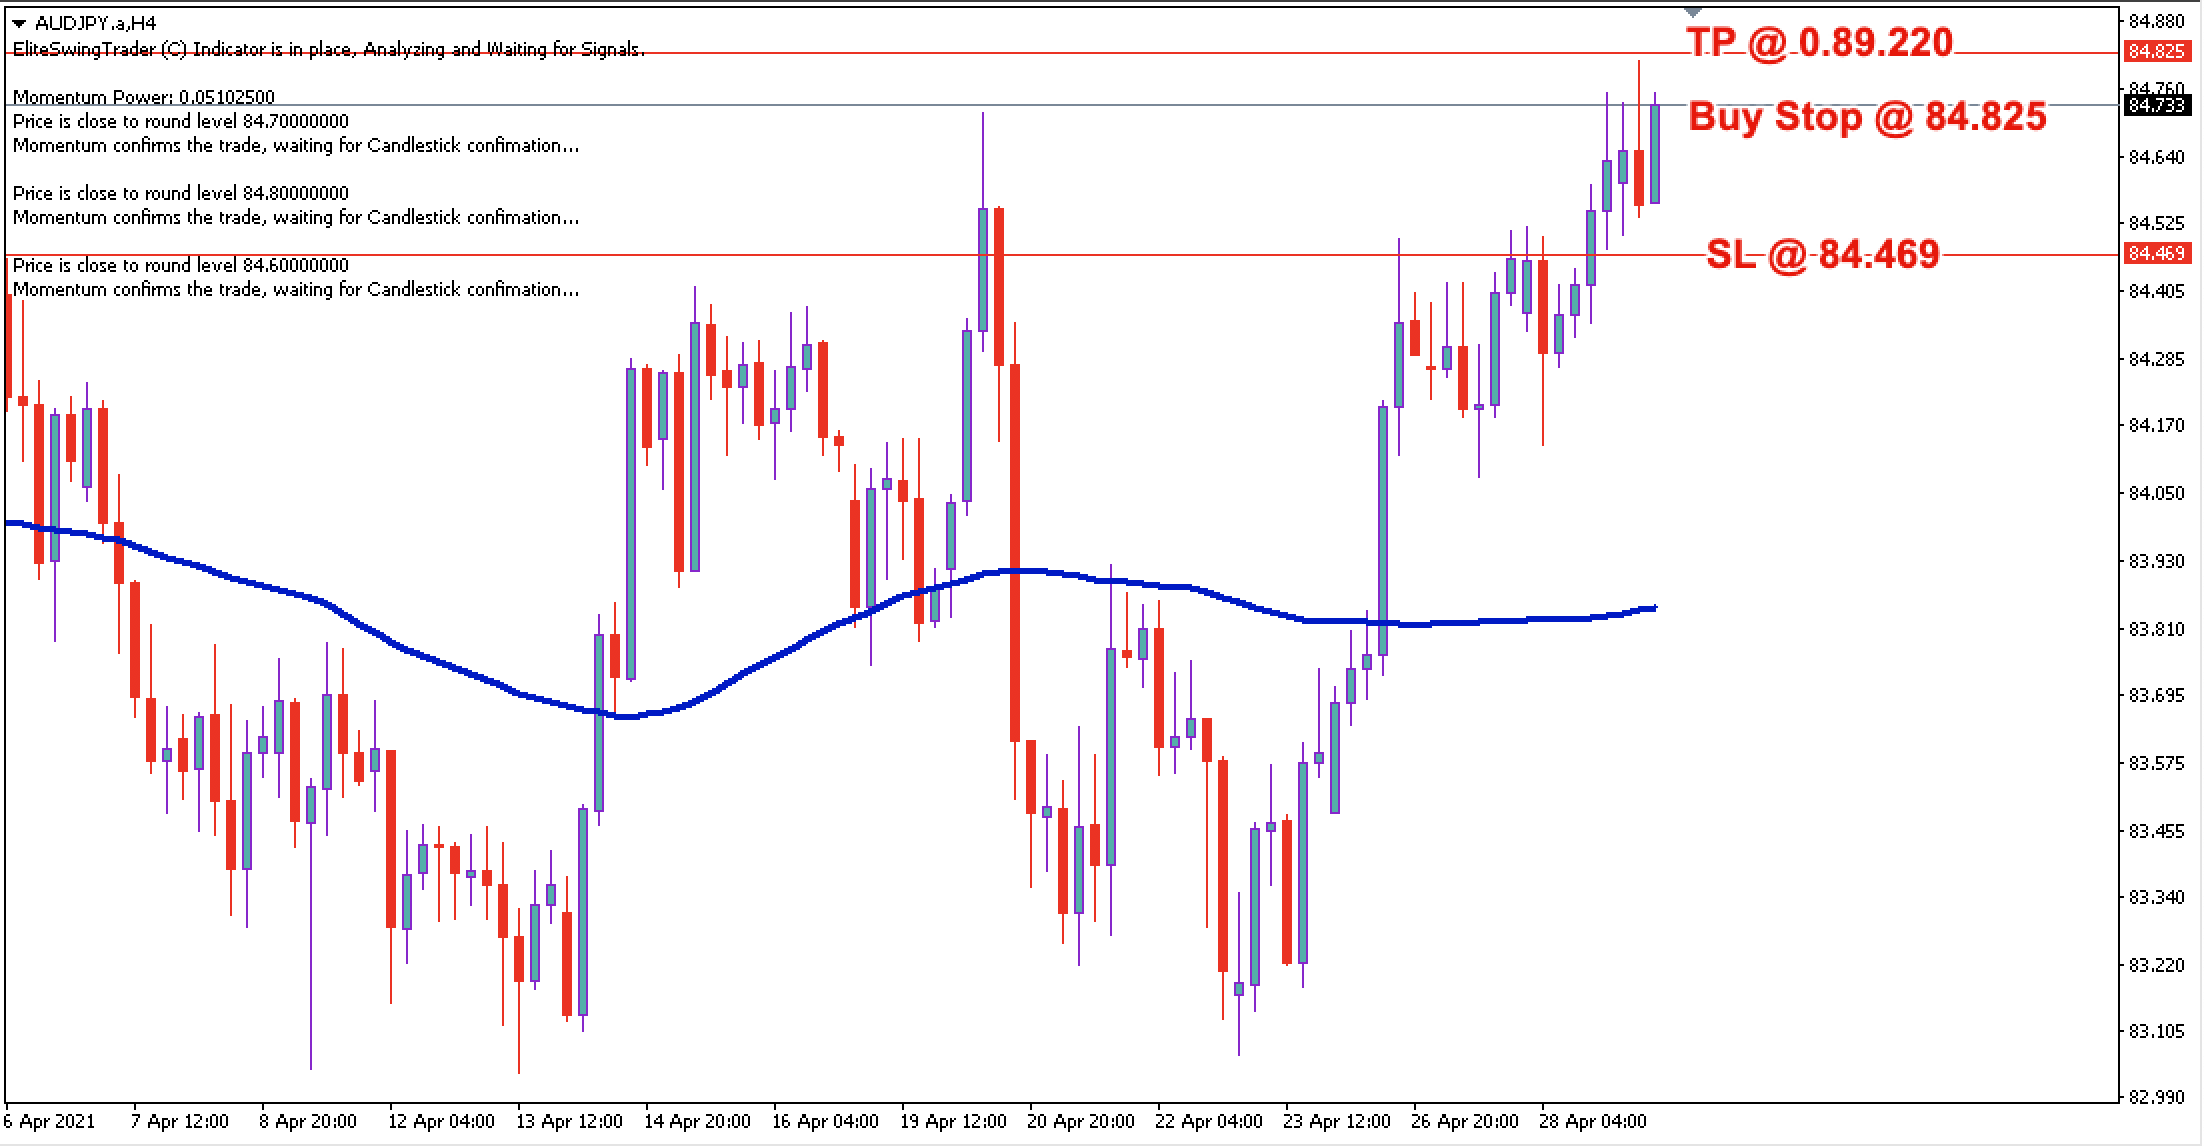 AUD/JPY Daily Price Forecast – 29th April 2021